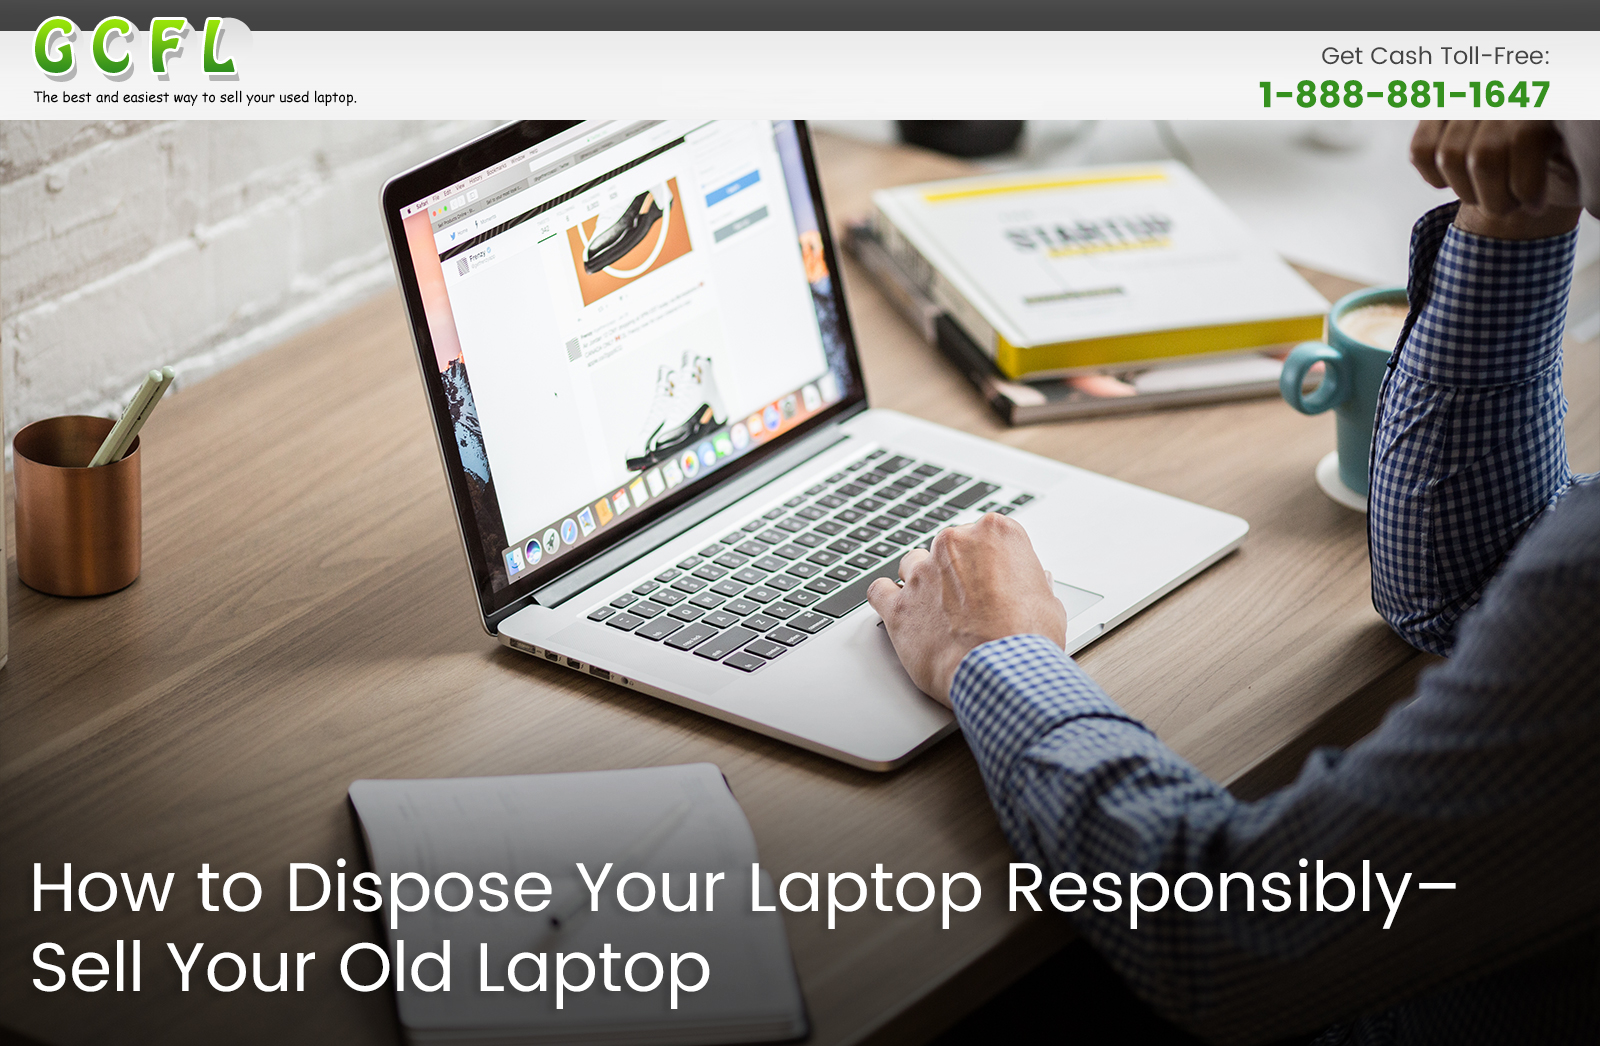 How to Dispose Your Laptop Responsibly – Sell Your Old Laptop